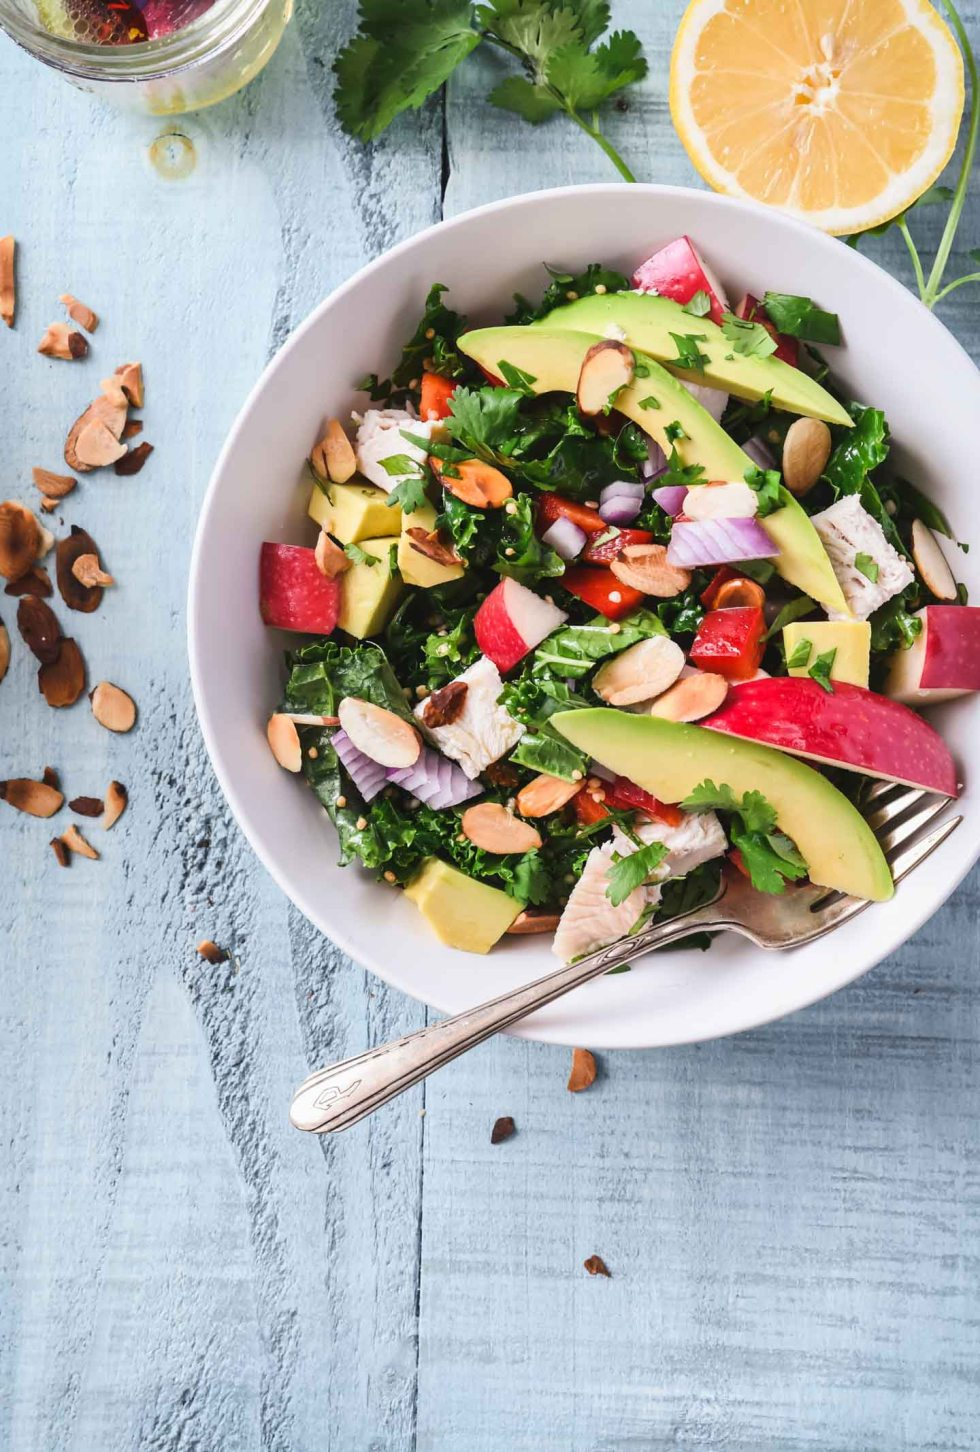 Chopped Kale Salad topped with bright veggies in an off-white bowl